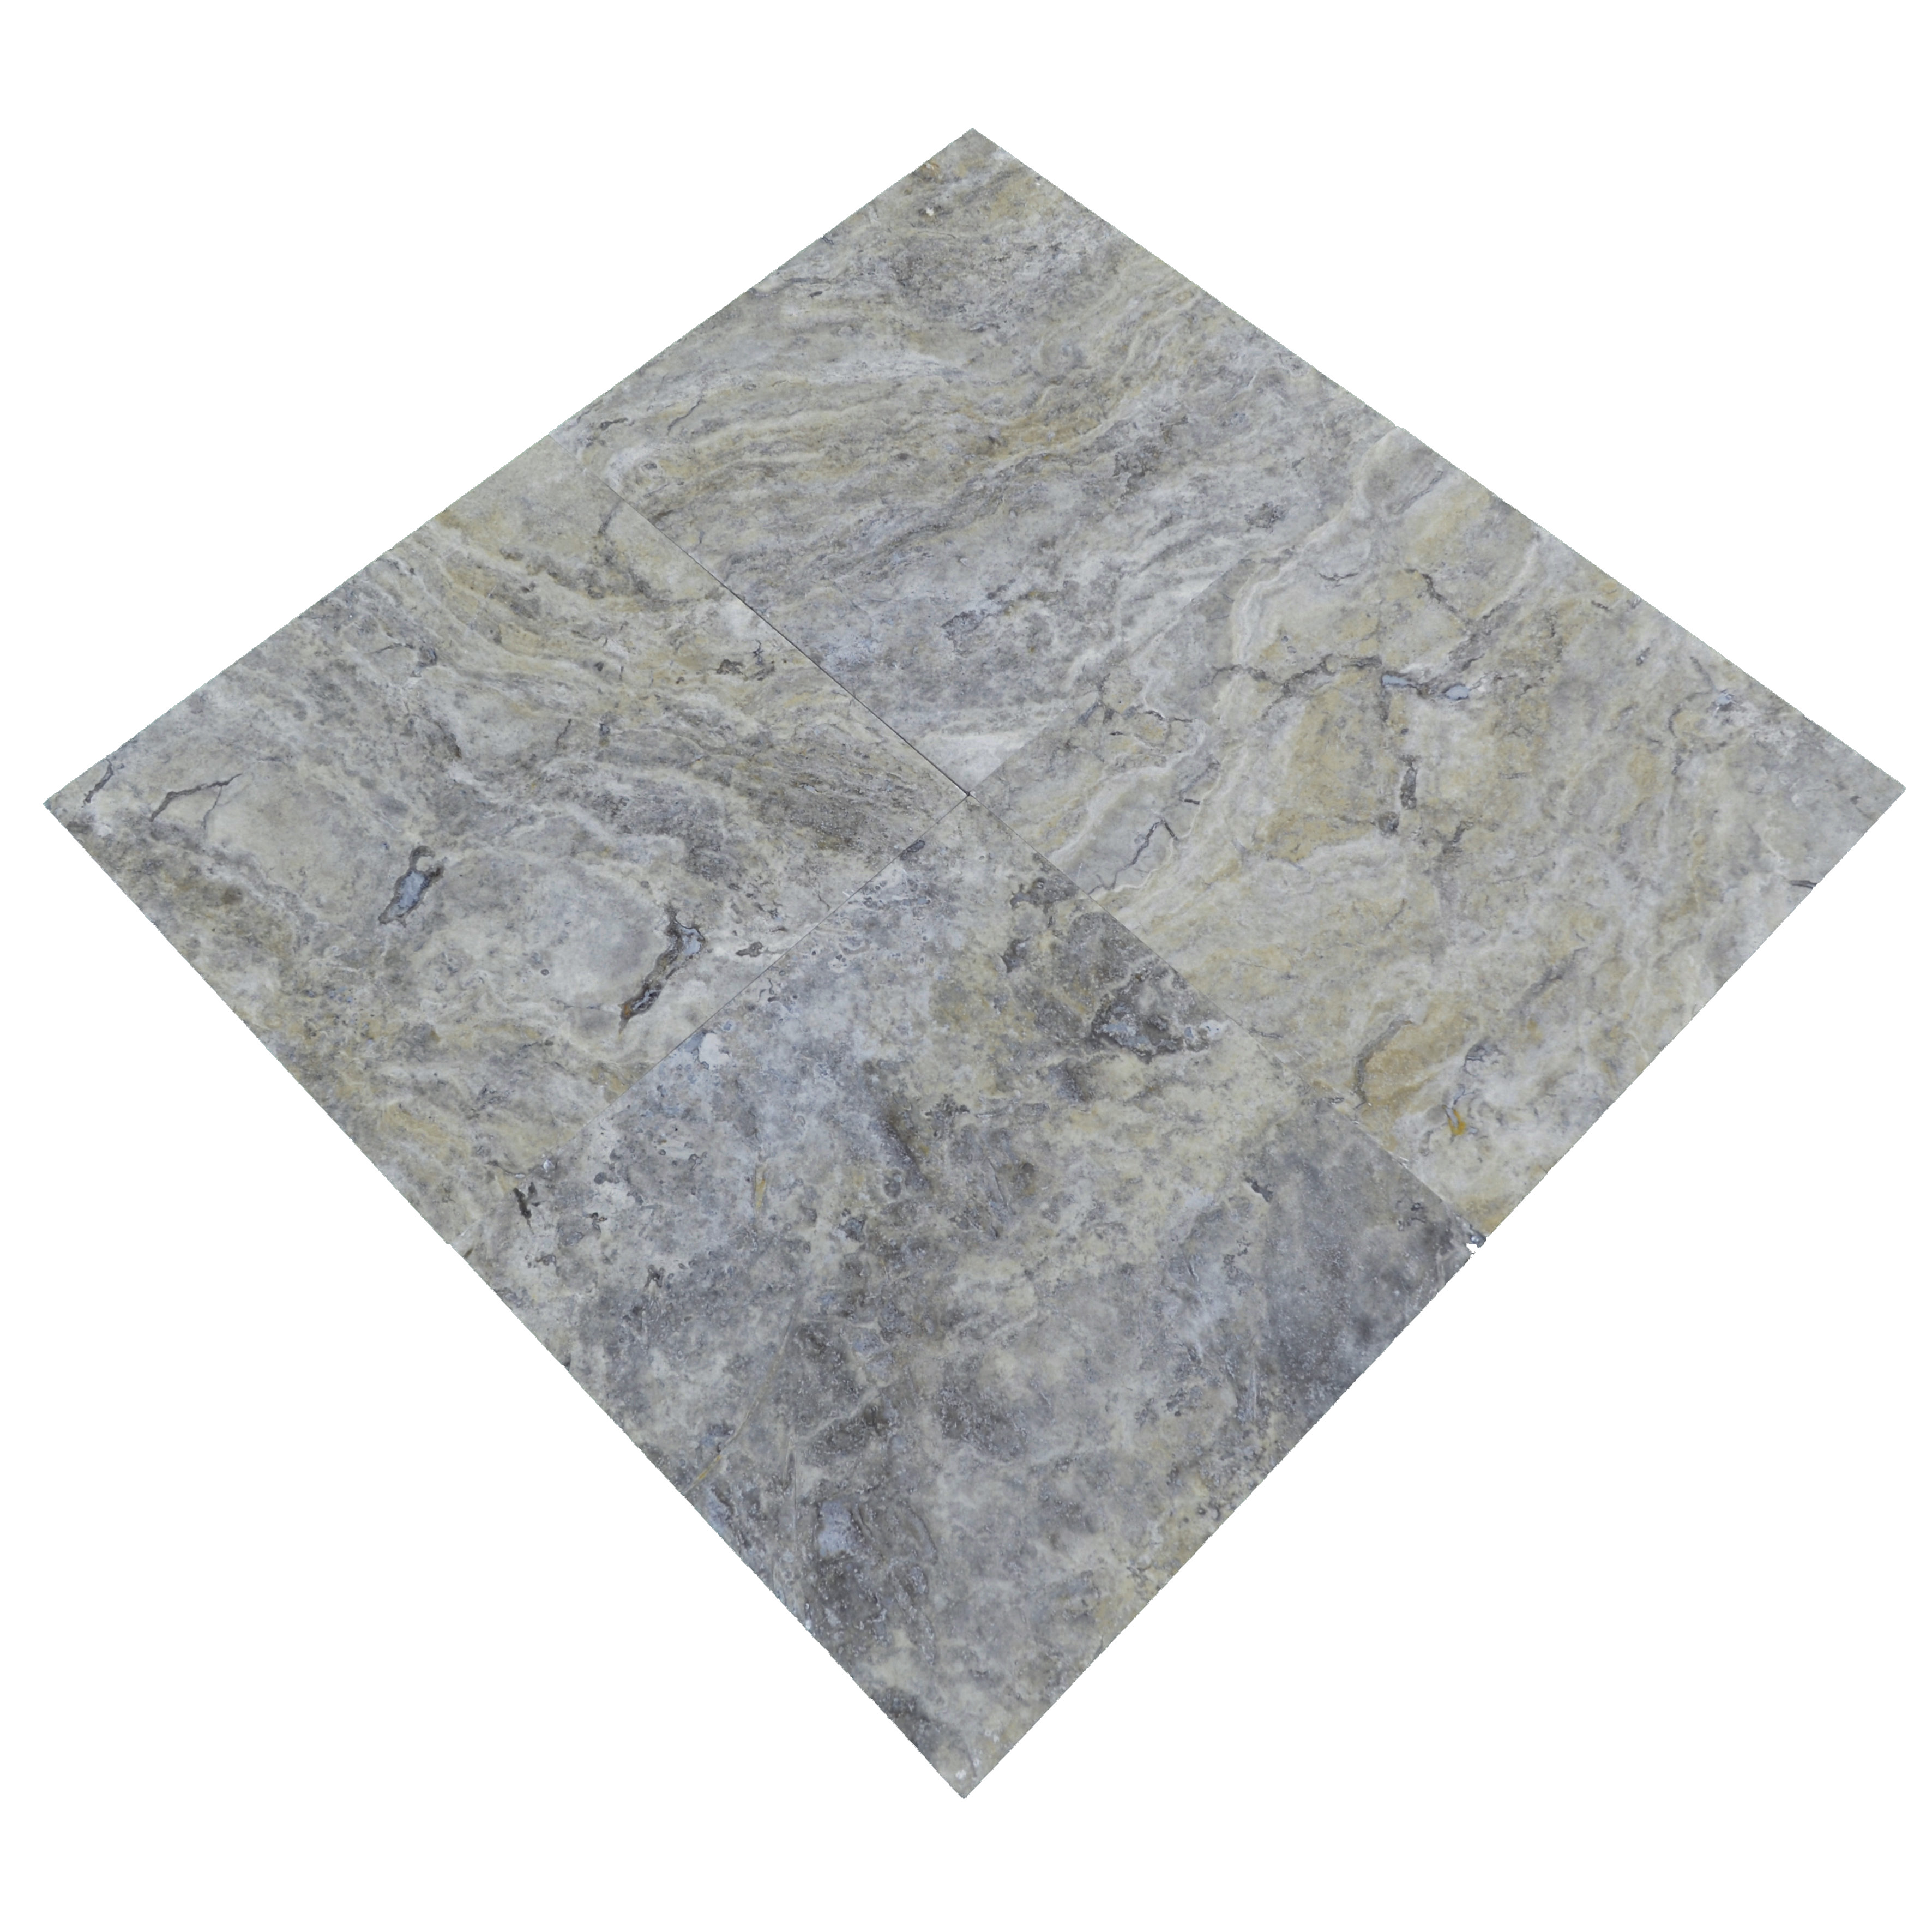 silver honed and filled travertine tiles 18x18-Travertine tiles sale-Atlantic Stone Source